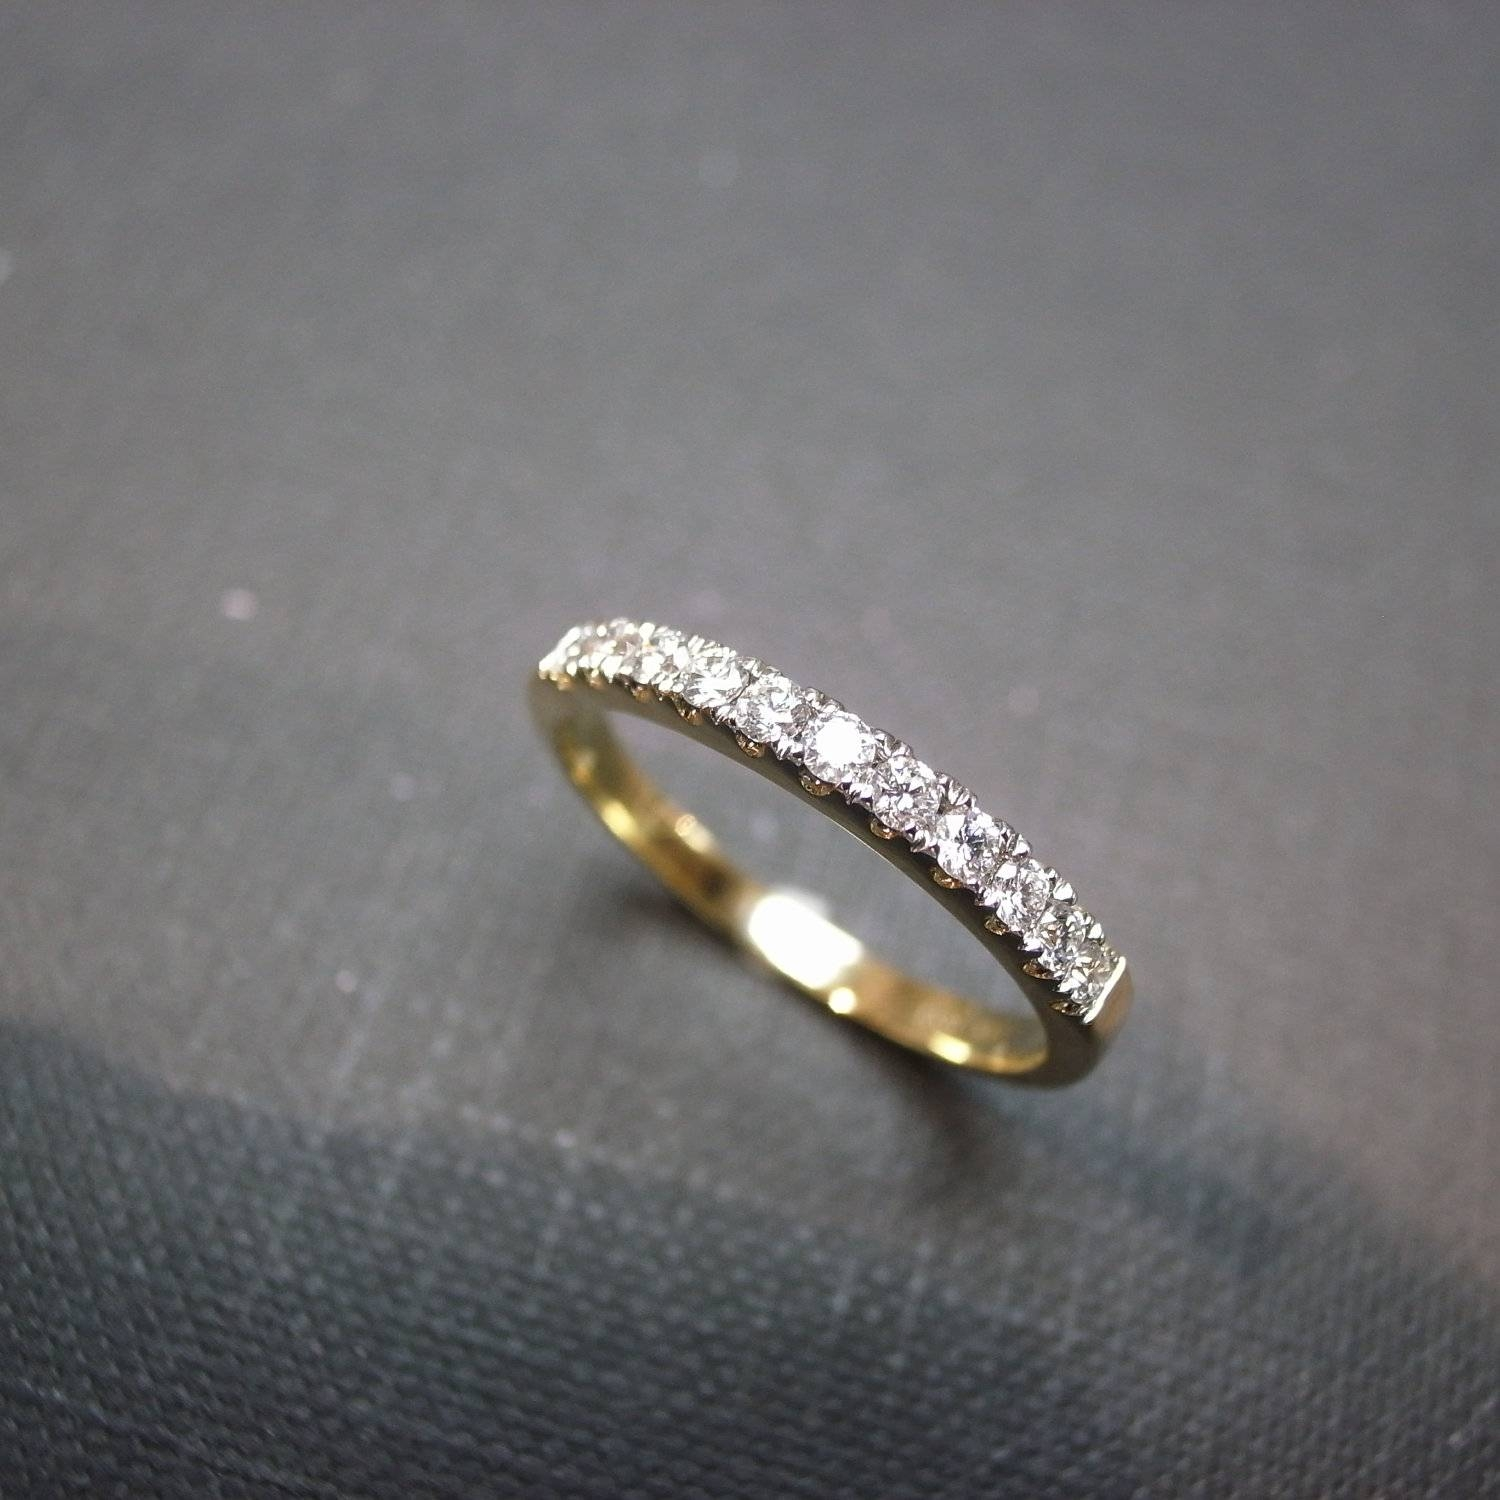 Custom Made Ring, Gold Diamond Bridal, Her Anniversary Ring, Women Regarding Current Custom Made Anniversary Rings (View 18 of 25)